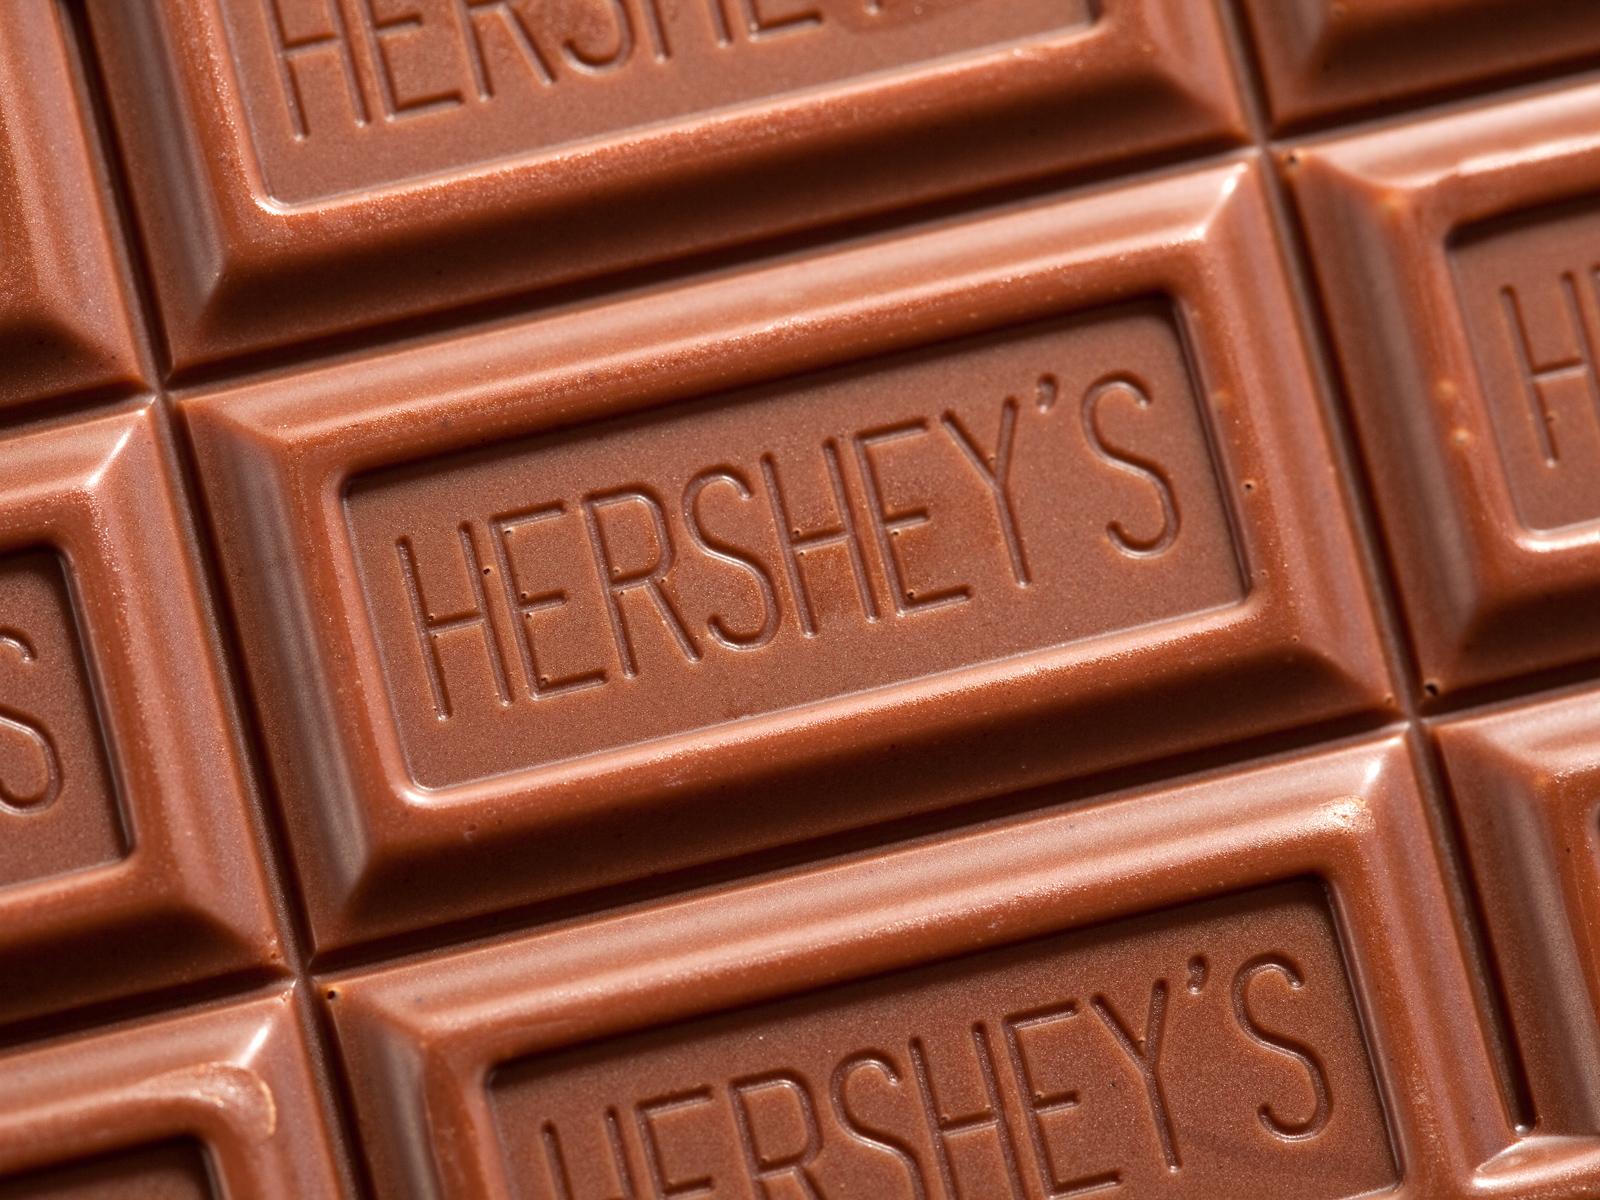 These Centenarians Say Hershey's Chocolate Is One Key to Their 79-Year Marriage